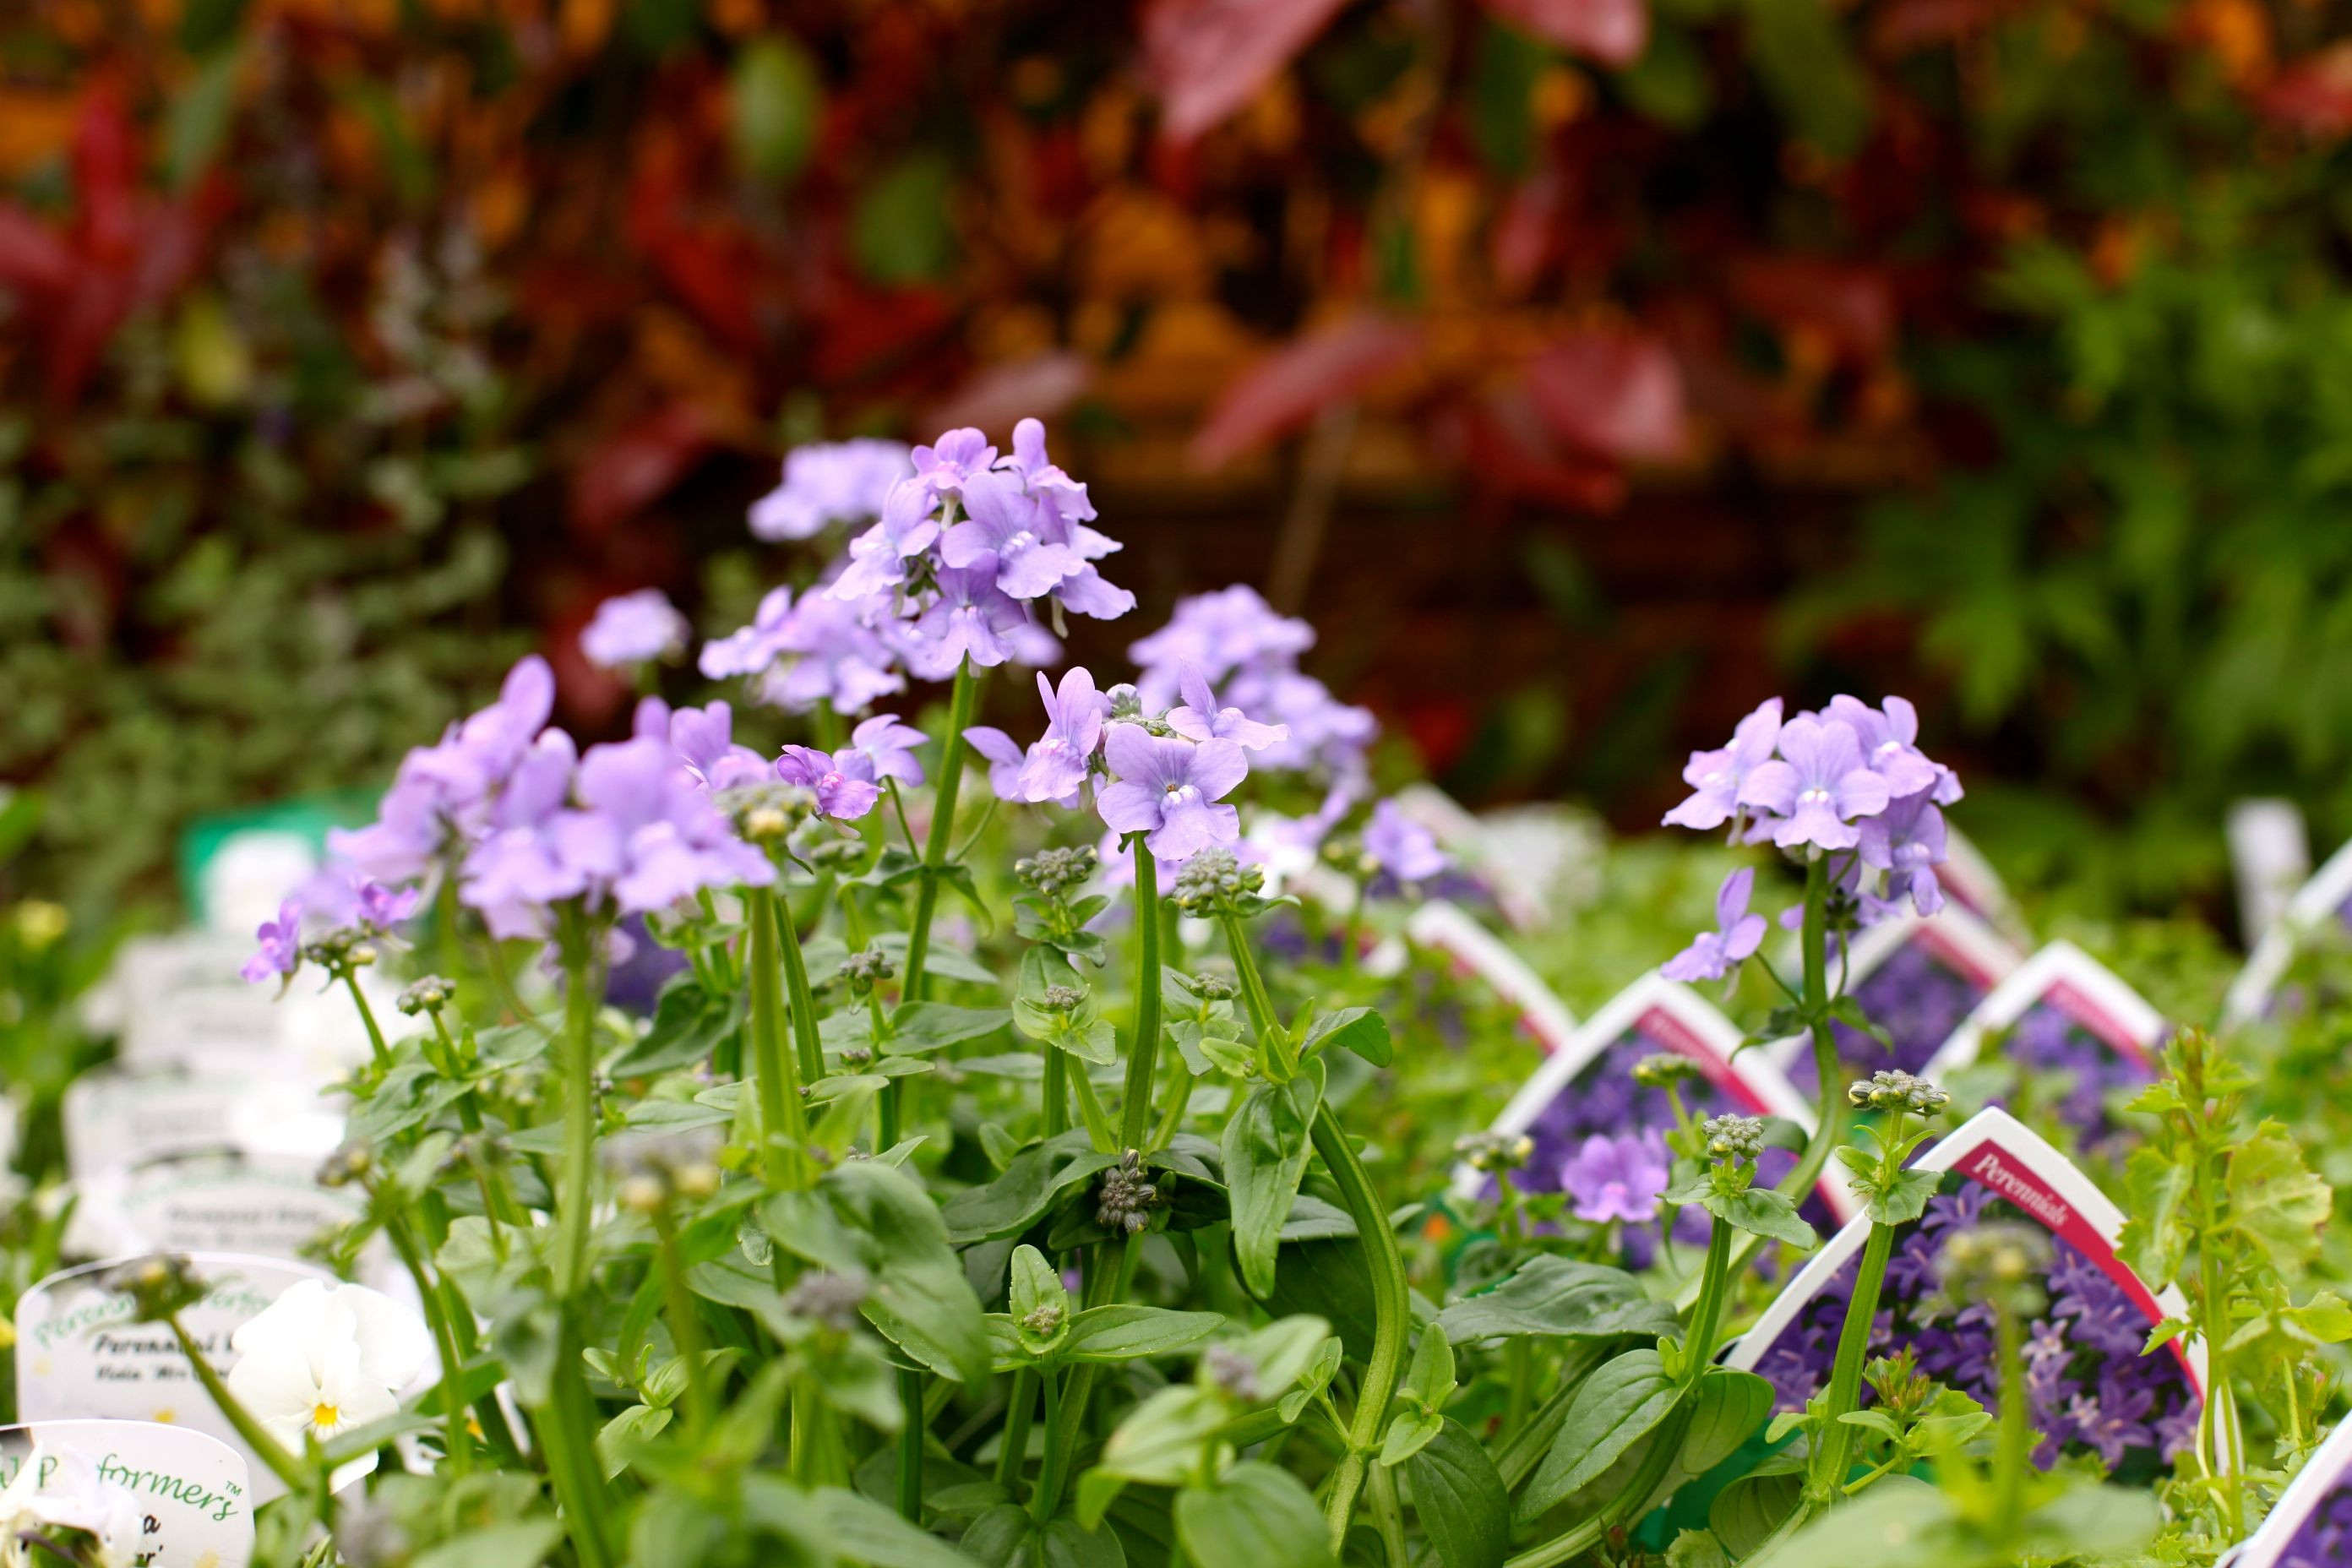 Nemesia Blue Lagoon Bears clusters of funnel shaped blue flowers over a long flowering season Suitable for patios well drained soil in sun or light